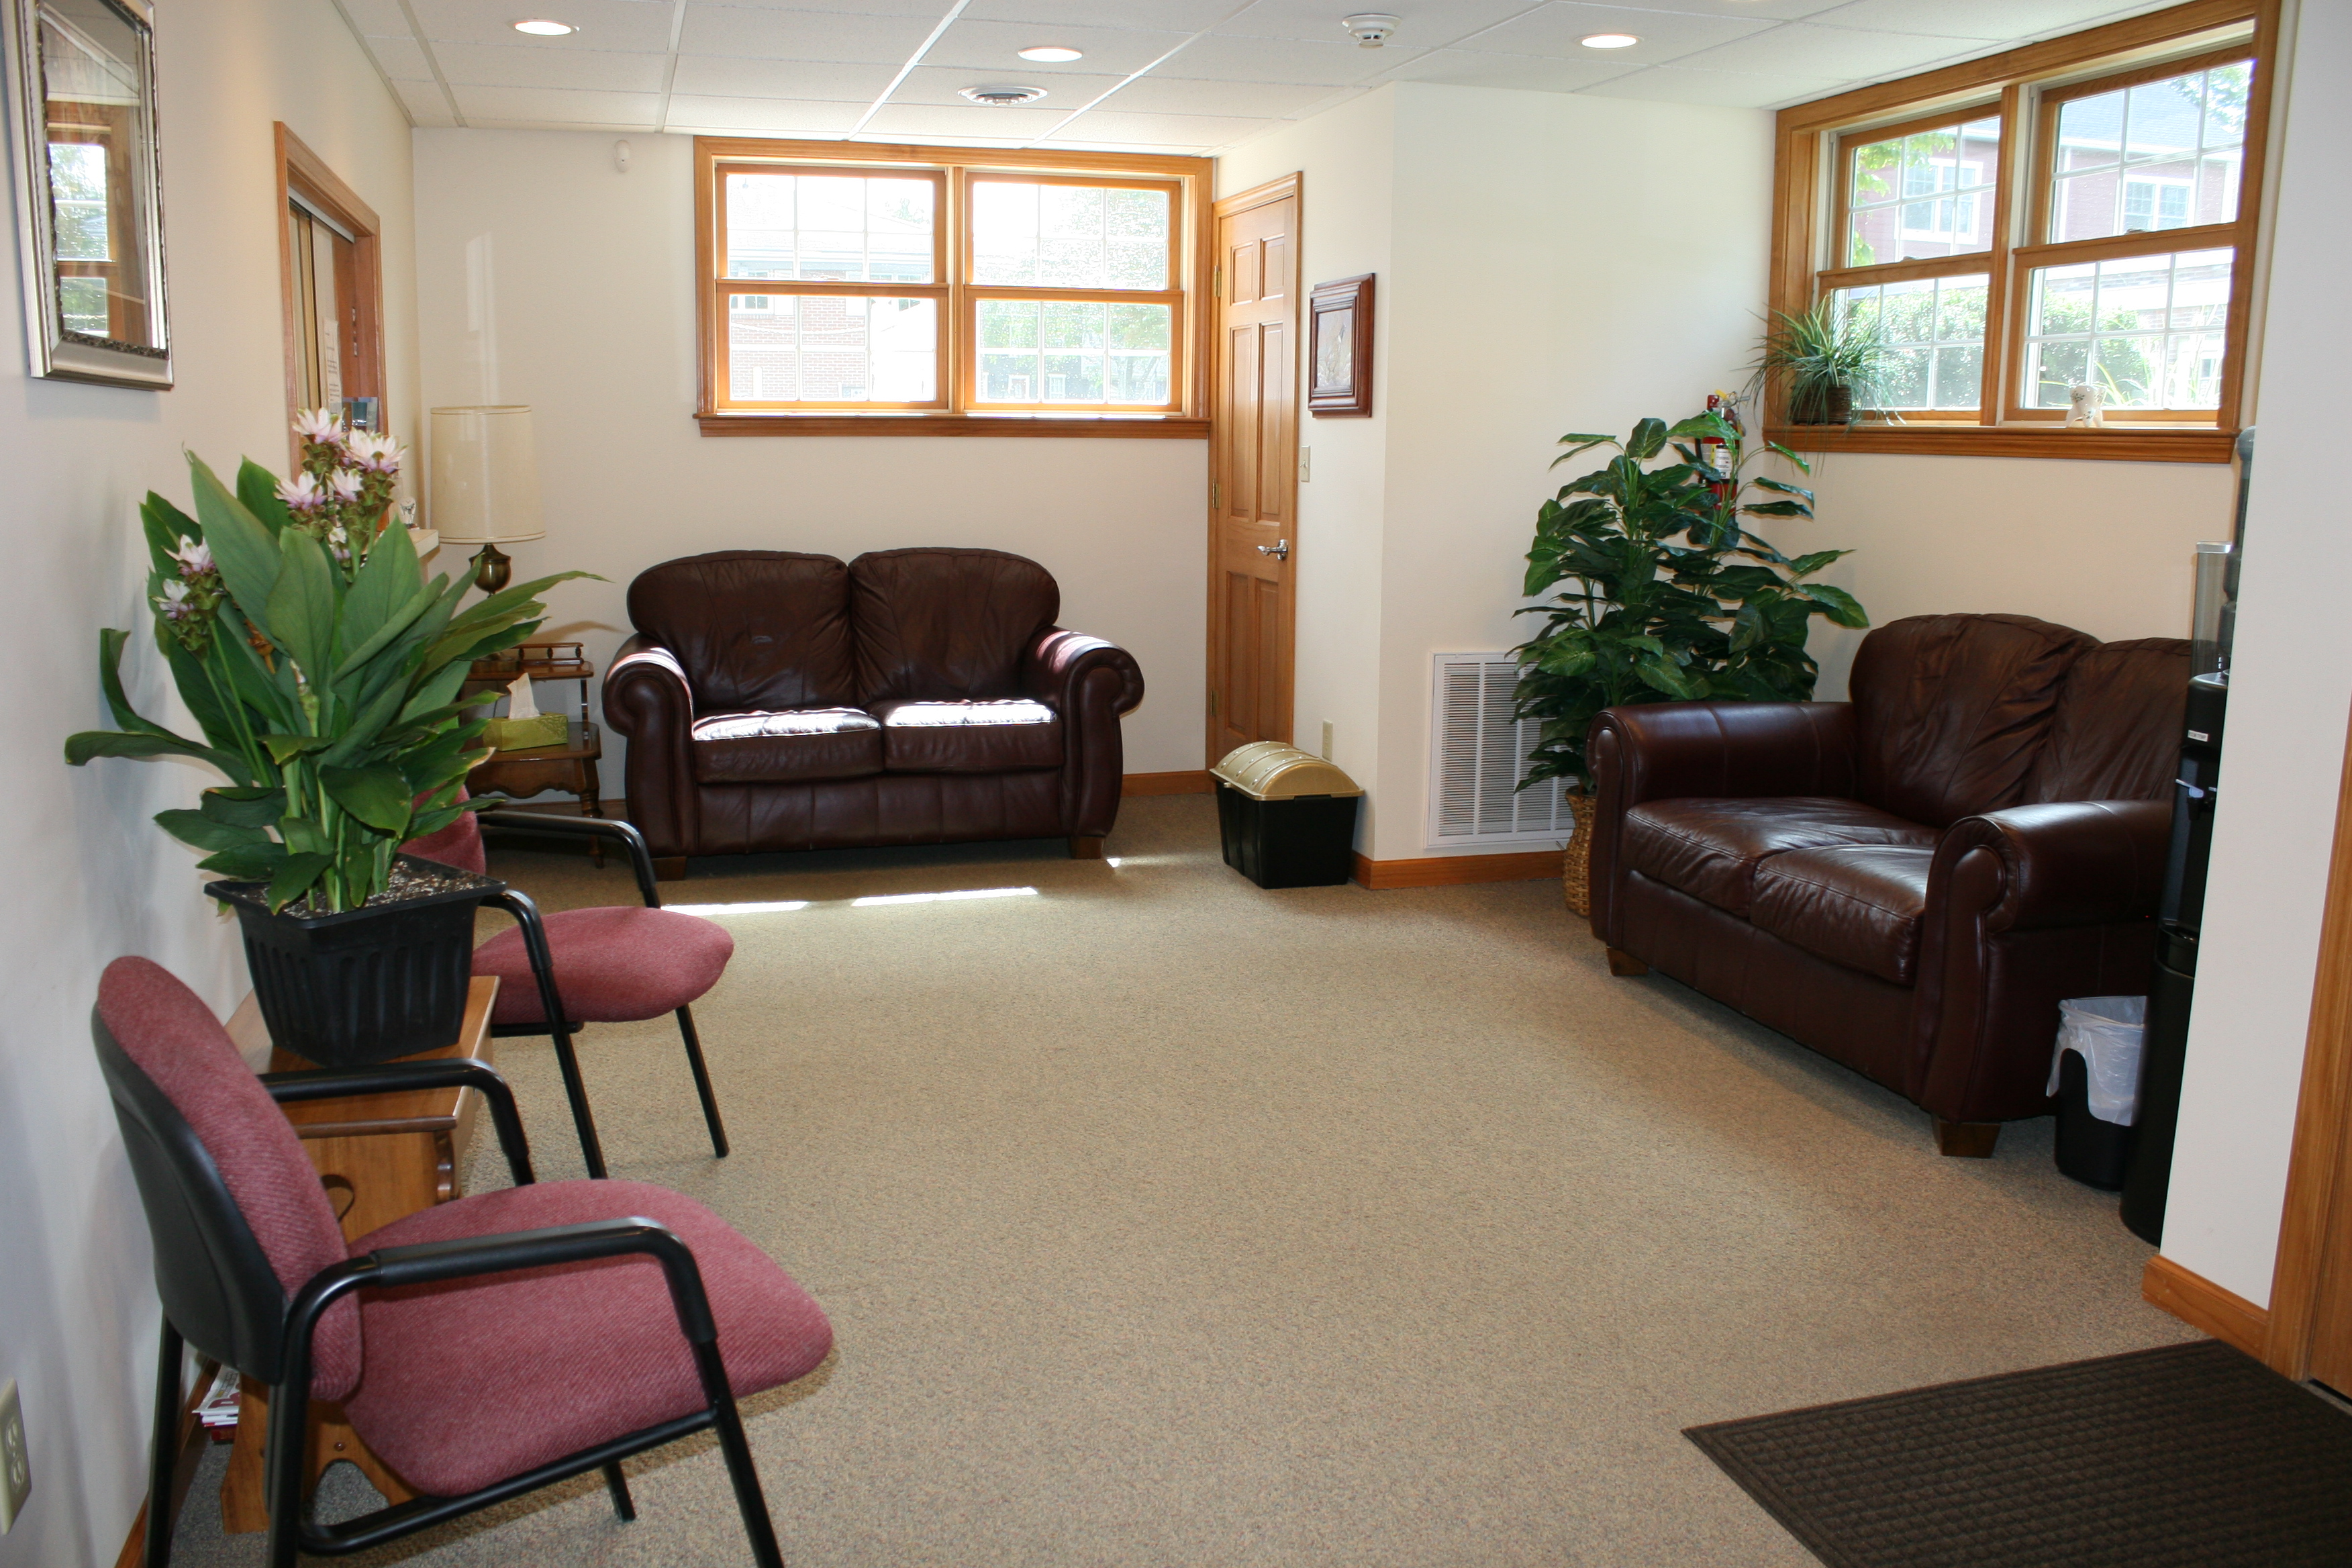 Orchard Park Village Dental image 4